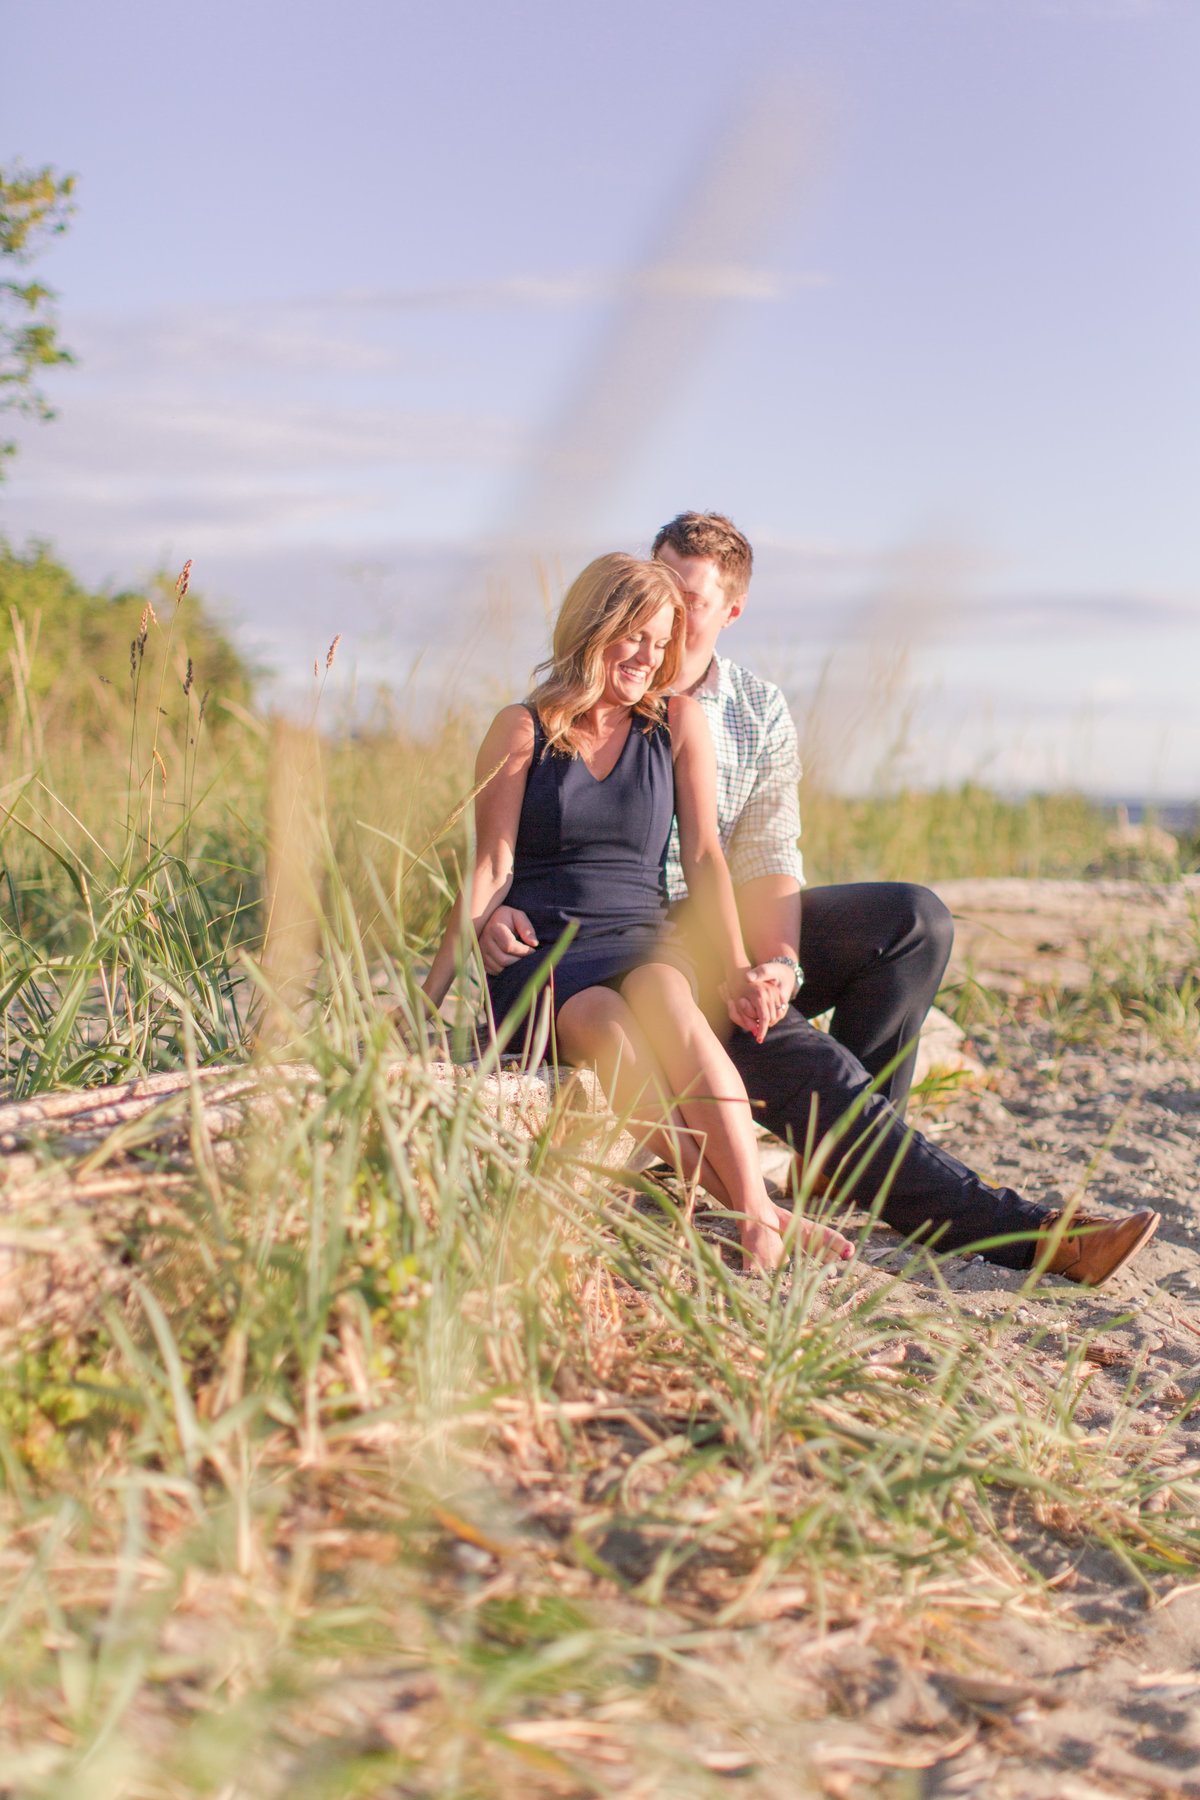 Ebie-Daylen-Engaged_Eva-Rieb-Photography-54